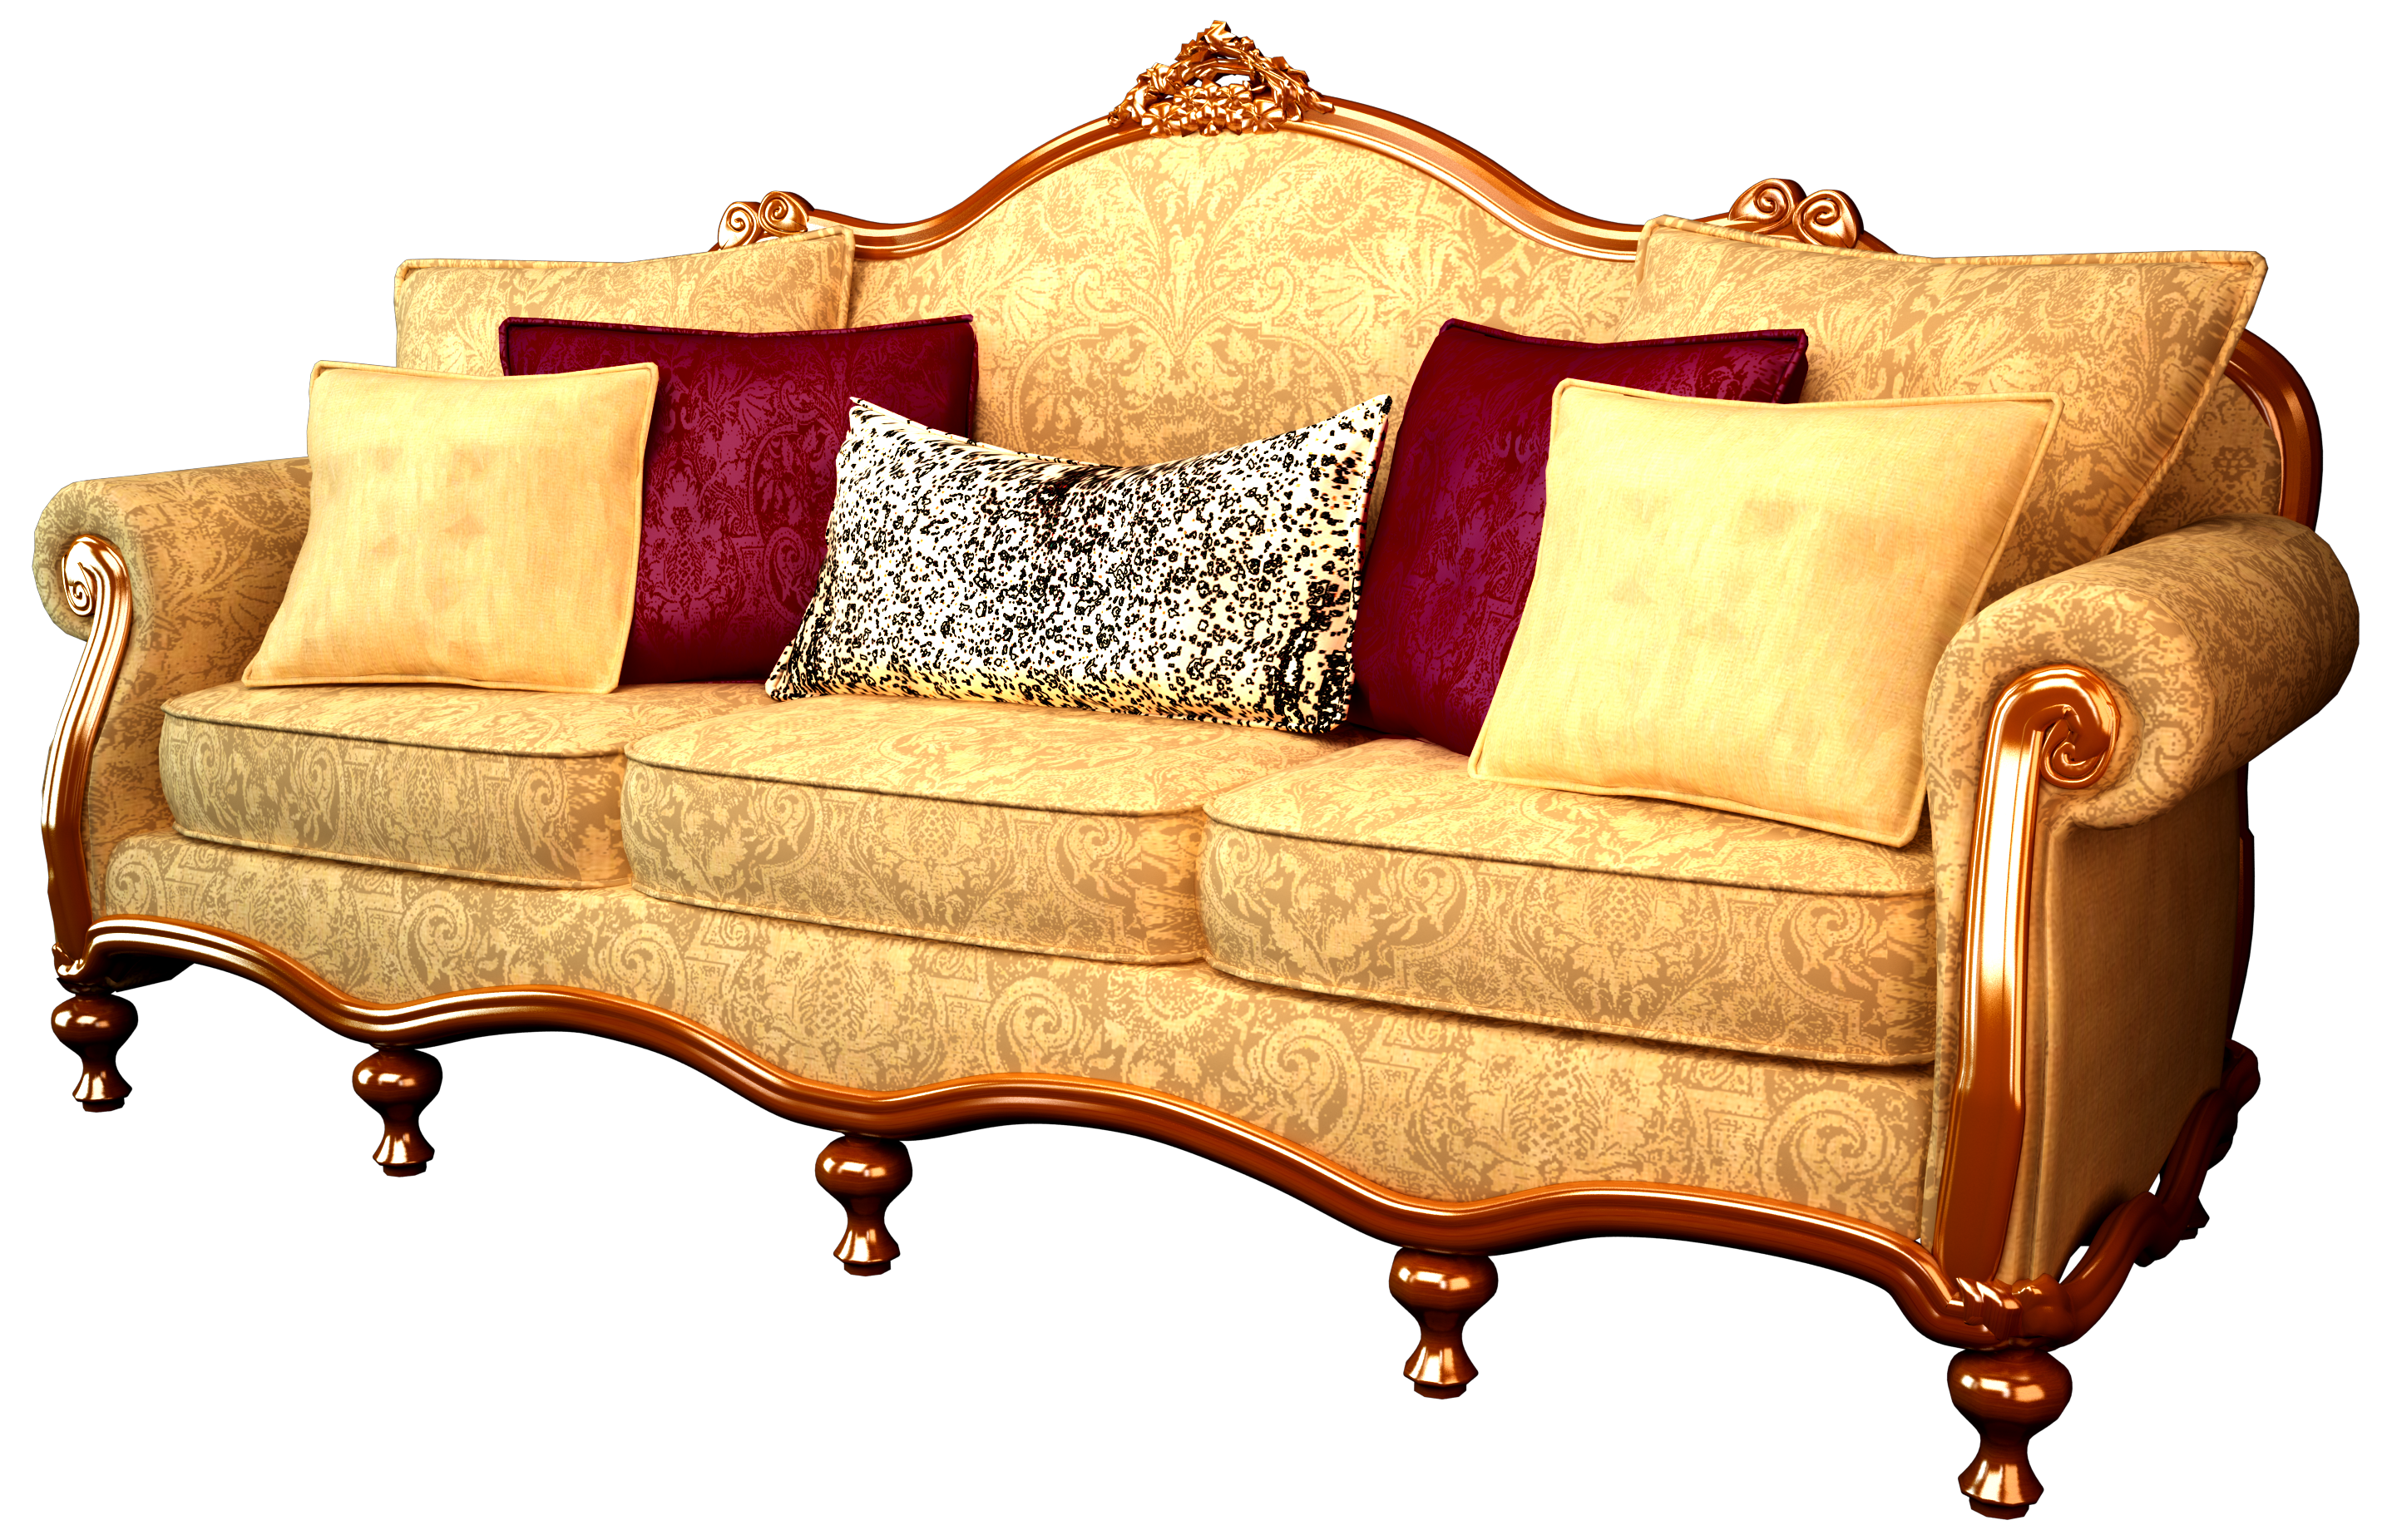 Sofa Gallery Png Clipart Picture.